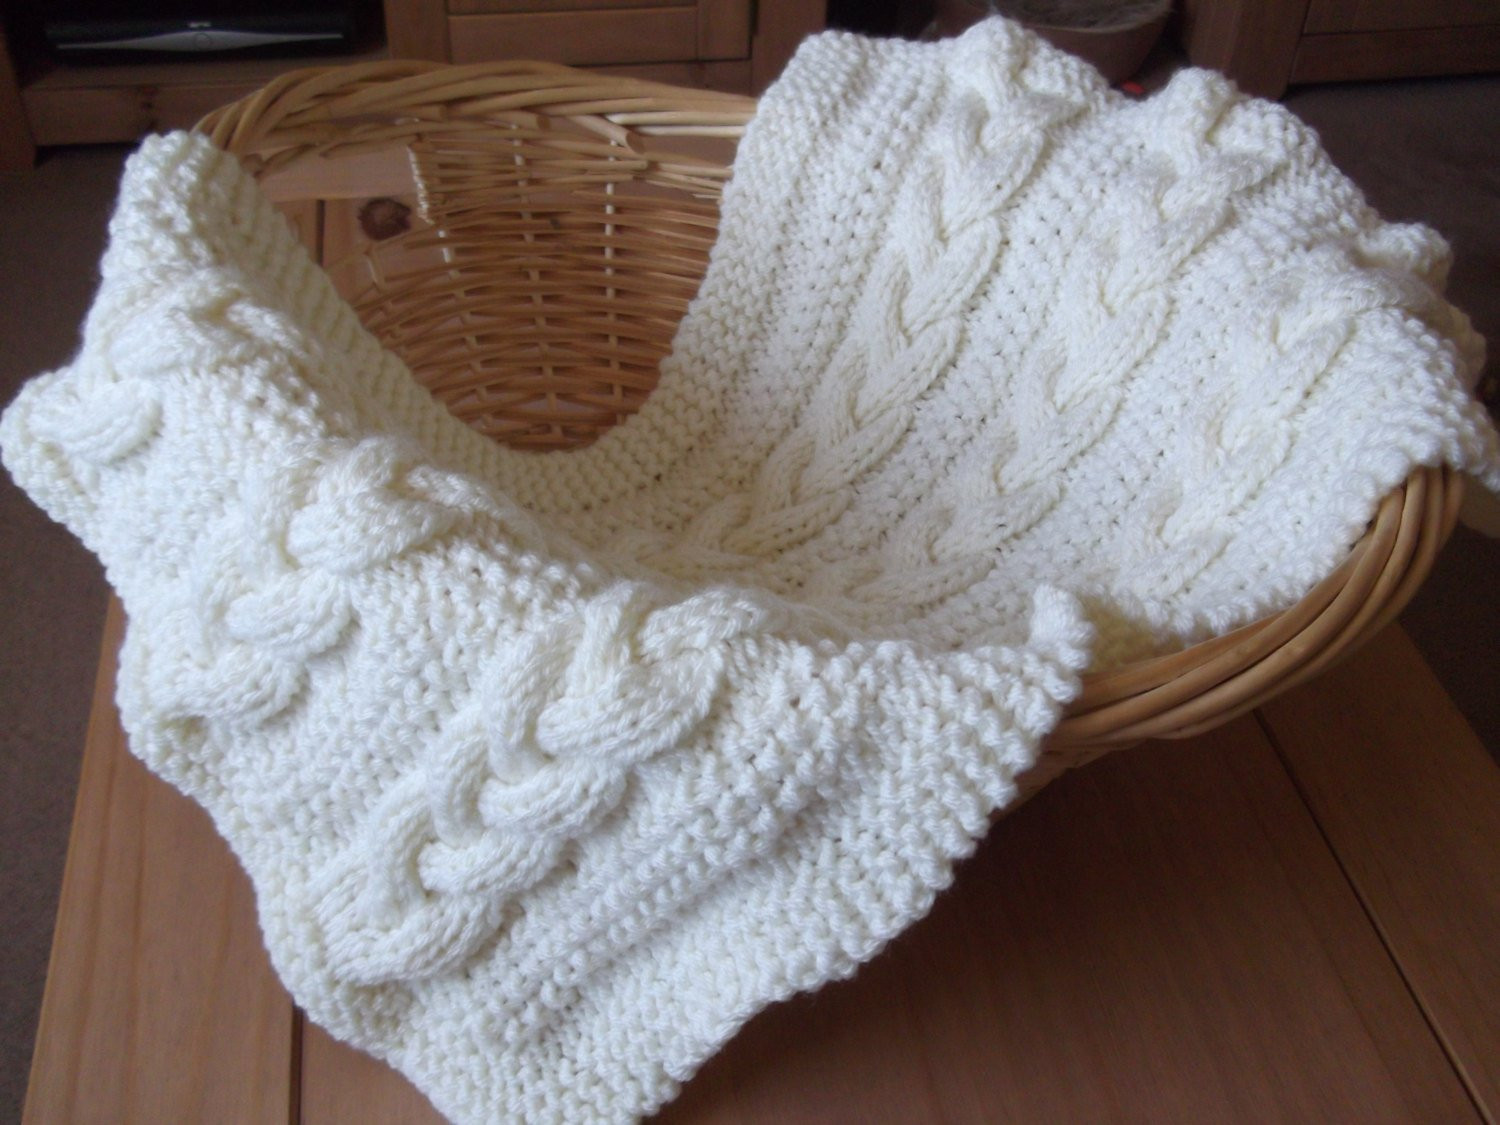 Inspirational Braided Cable Baby Blanket Basket Stuffer by Cable Knit Baby Blanket Of Amazing 41 Photos Cable Knit Baby Blanket